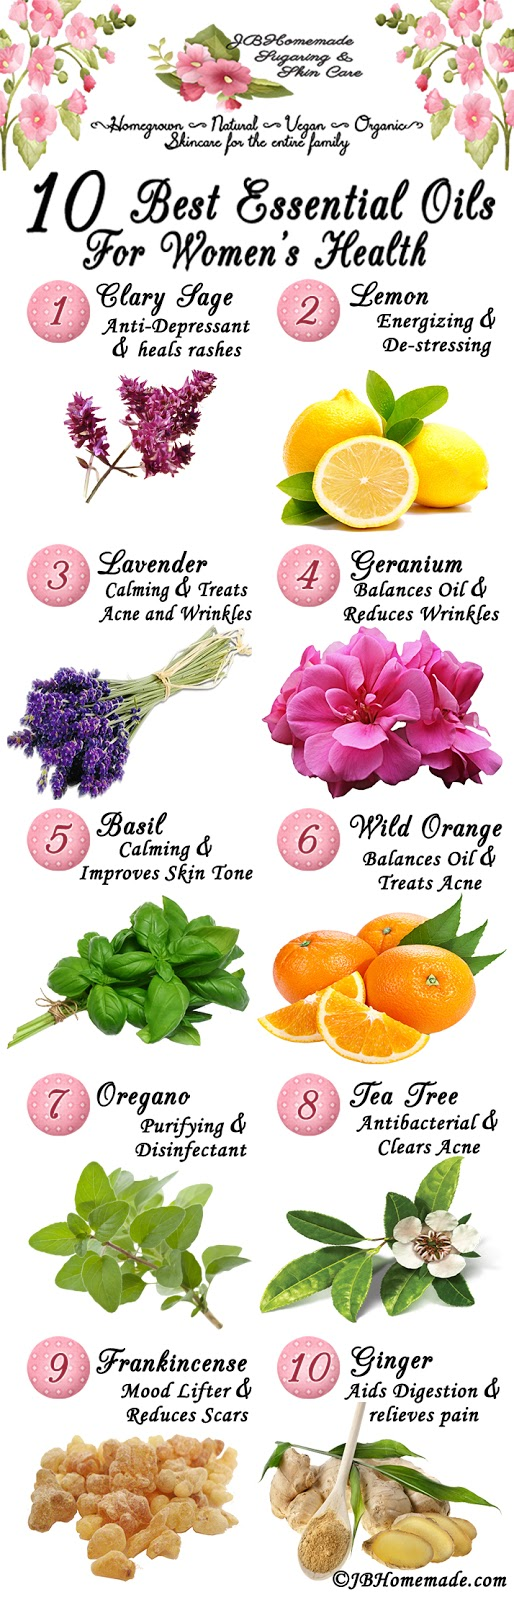 The 10 Best Essential Oils for Women's Health: Clary Sage, Lemon, Lavender, Geranium, Basil, Wild Orange, Oregano, Tea Tree, Frankincense, and Ginger. Why? Read more at JBHomemade